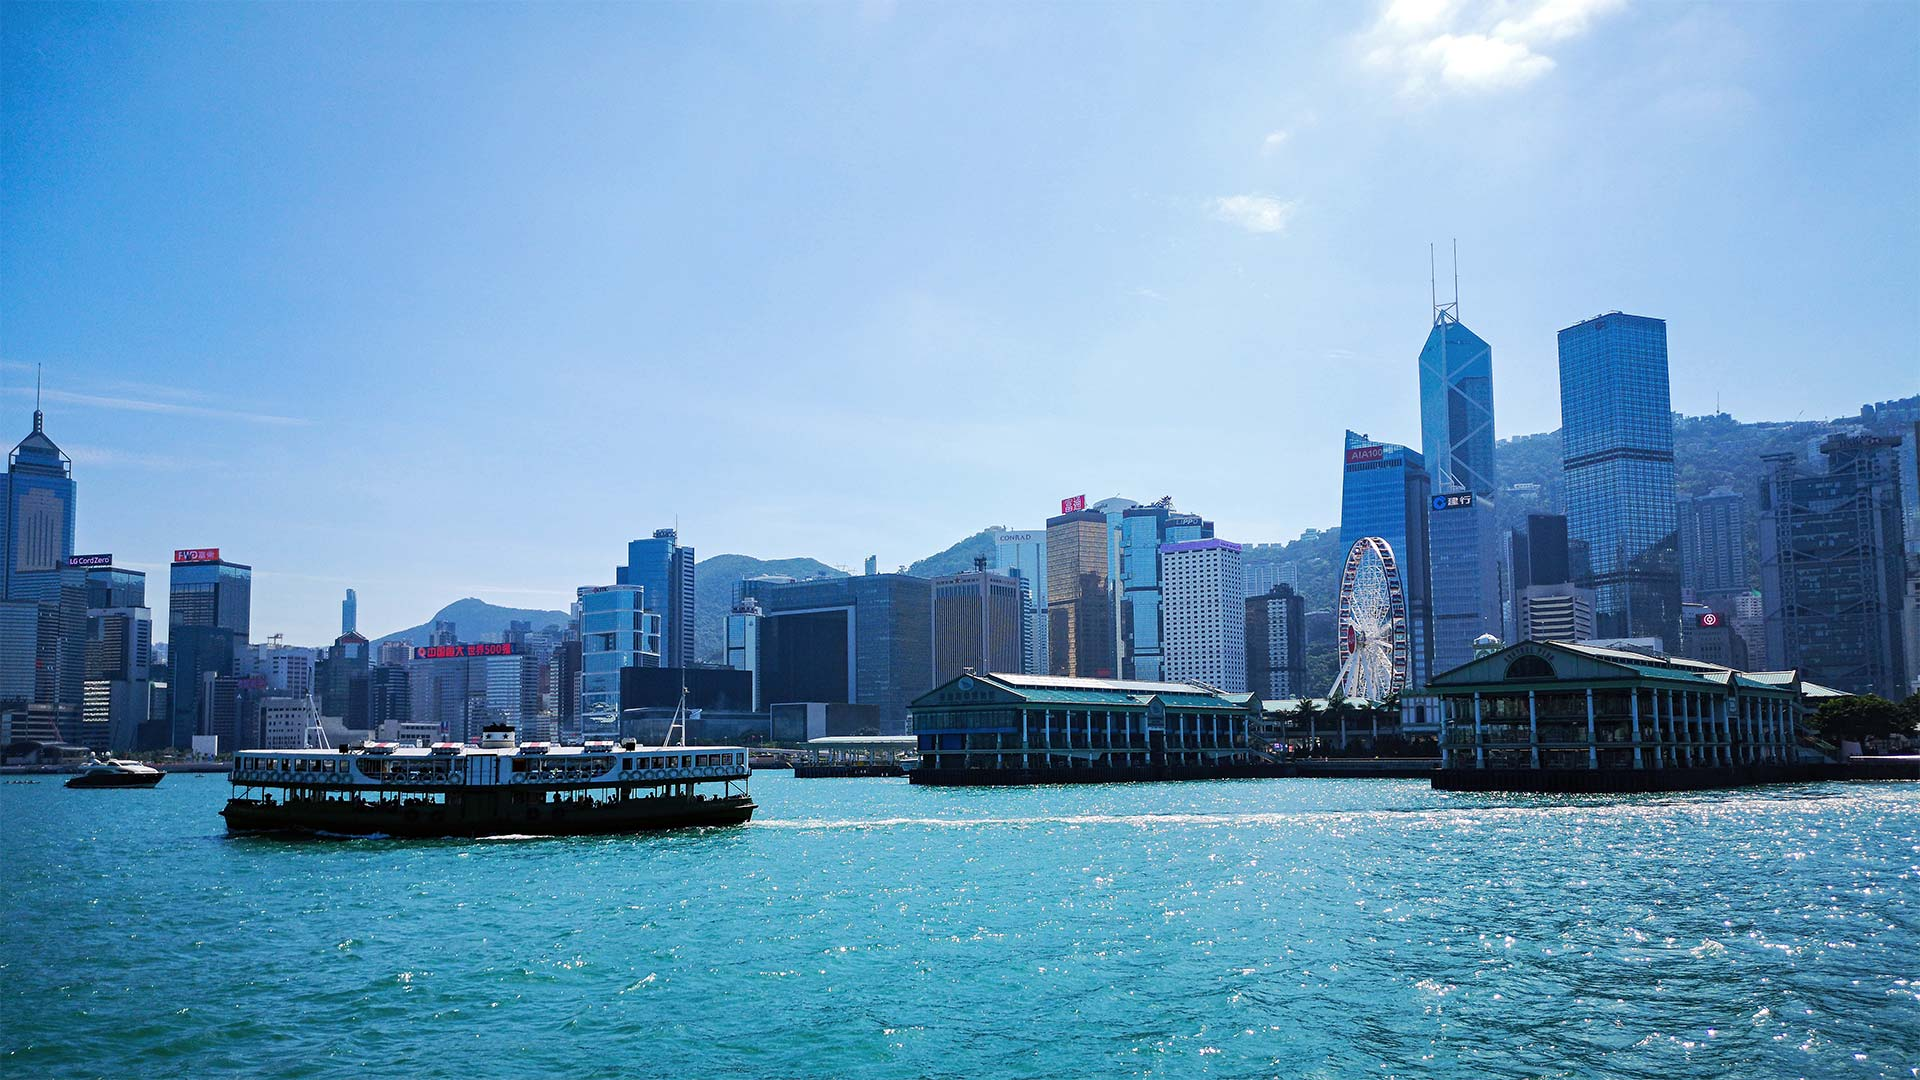 The Central Pier of the Star Ferry on Hong Kong Island